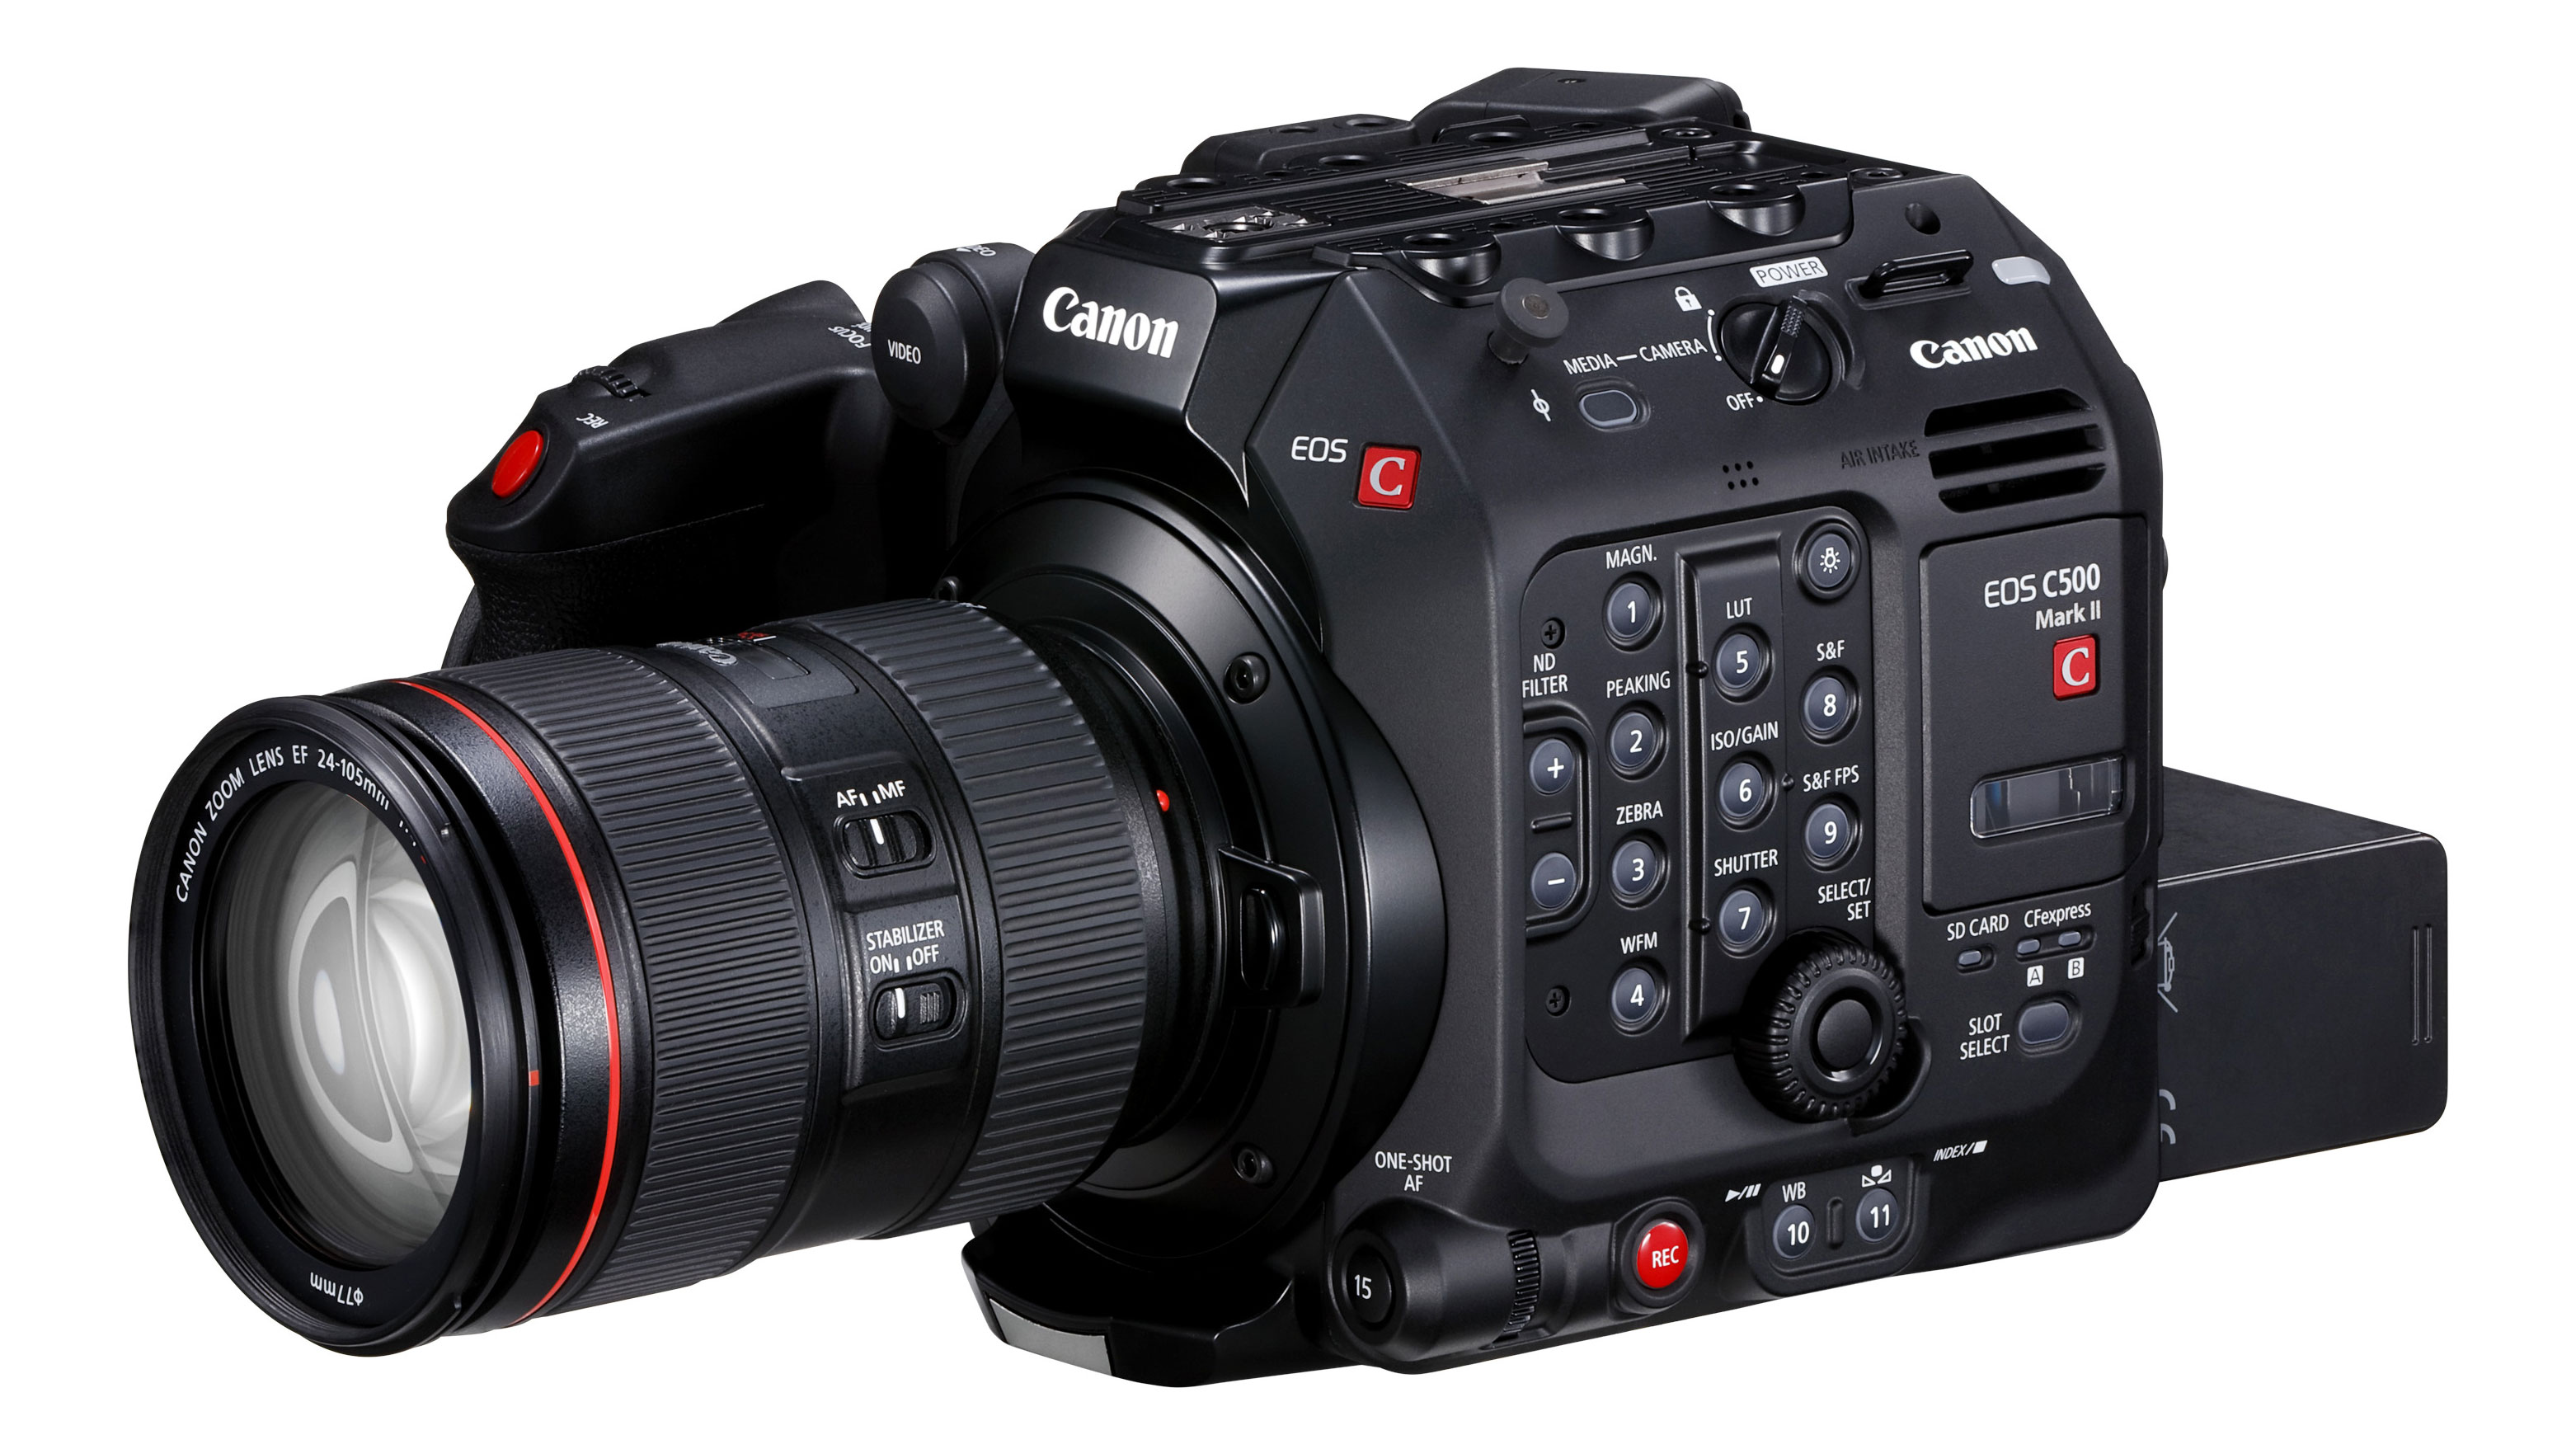 Canon EOS C500 Mark II comes with 5 9K Cinema RAW Light and